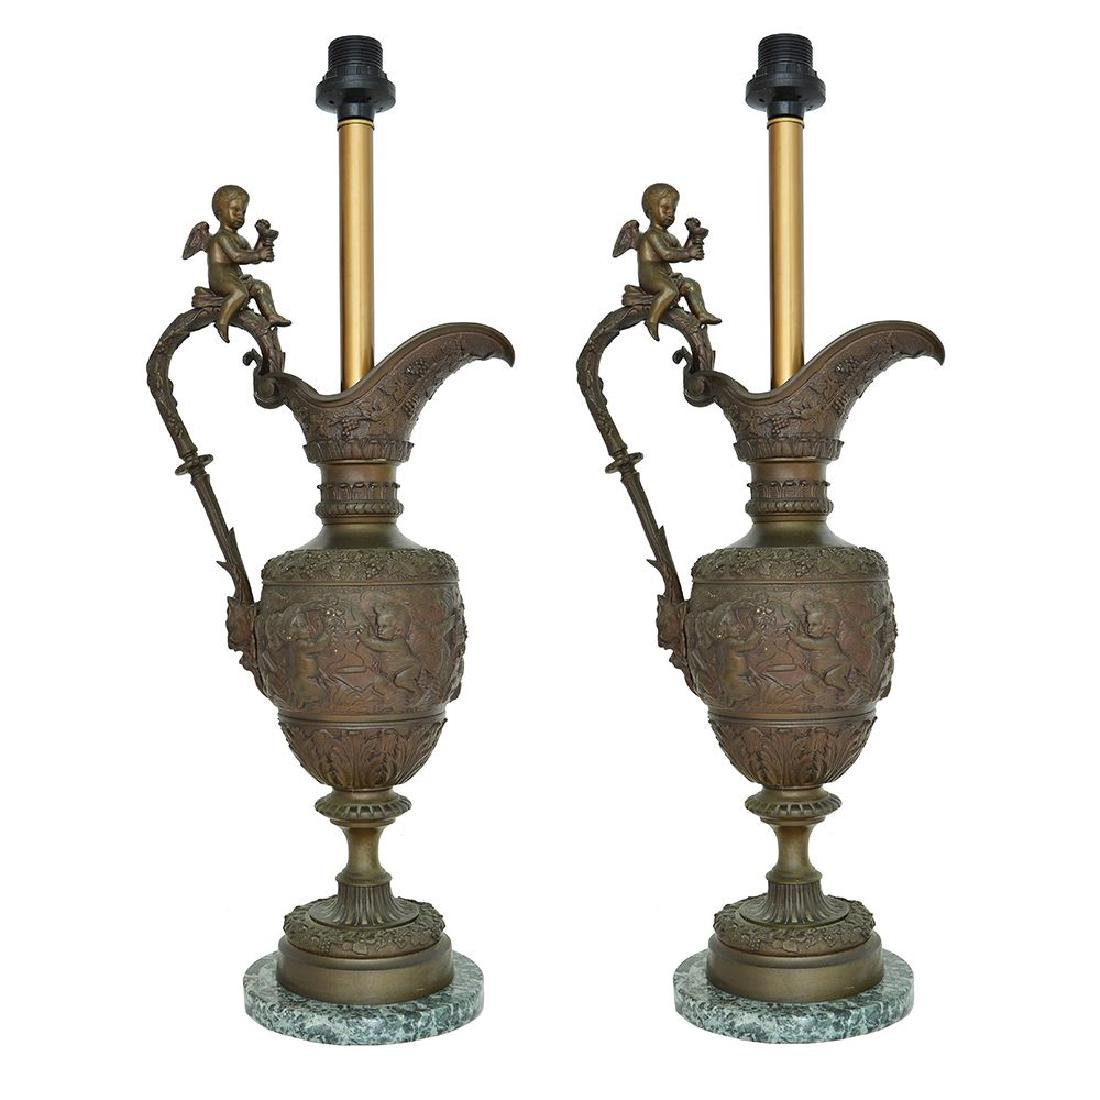 A PAIR OF CAST BRASS LAMP BASES